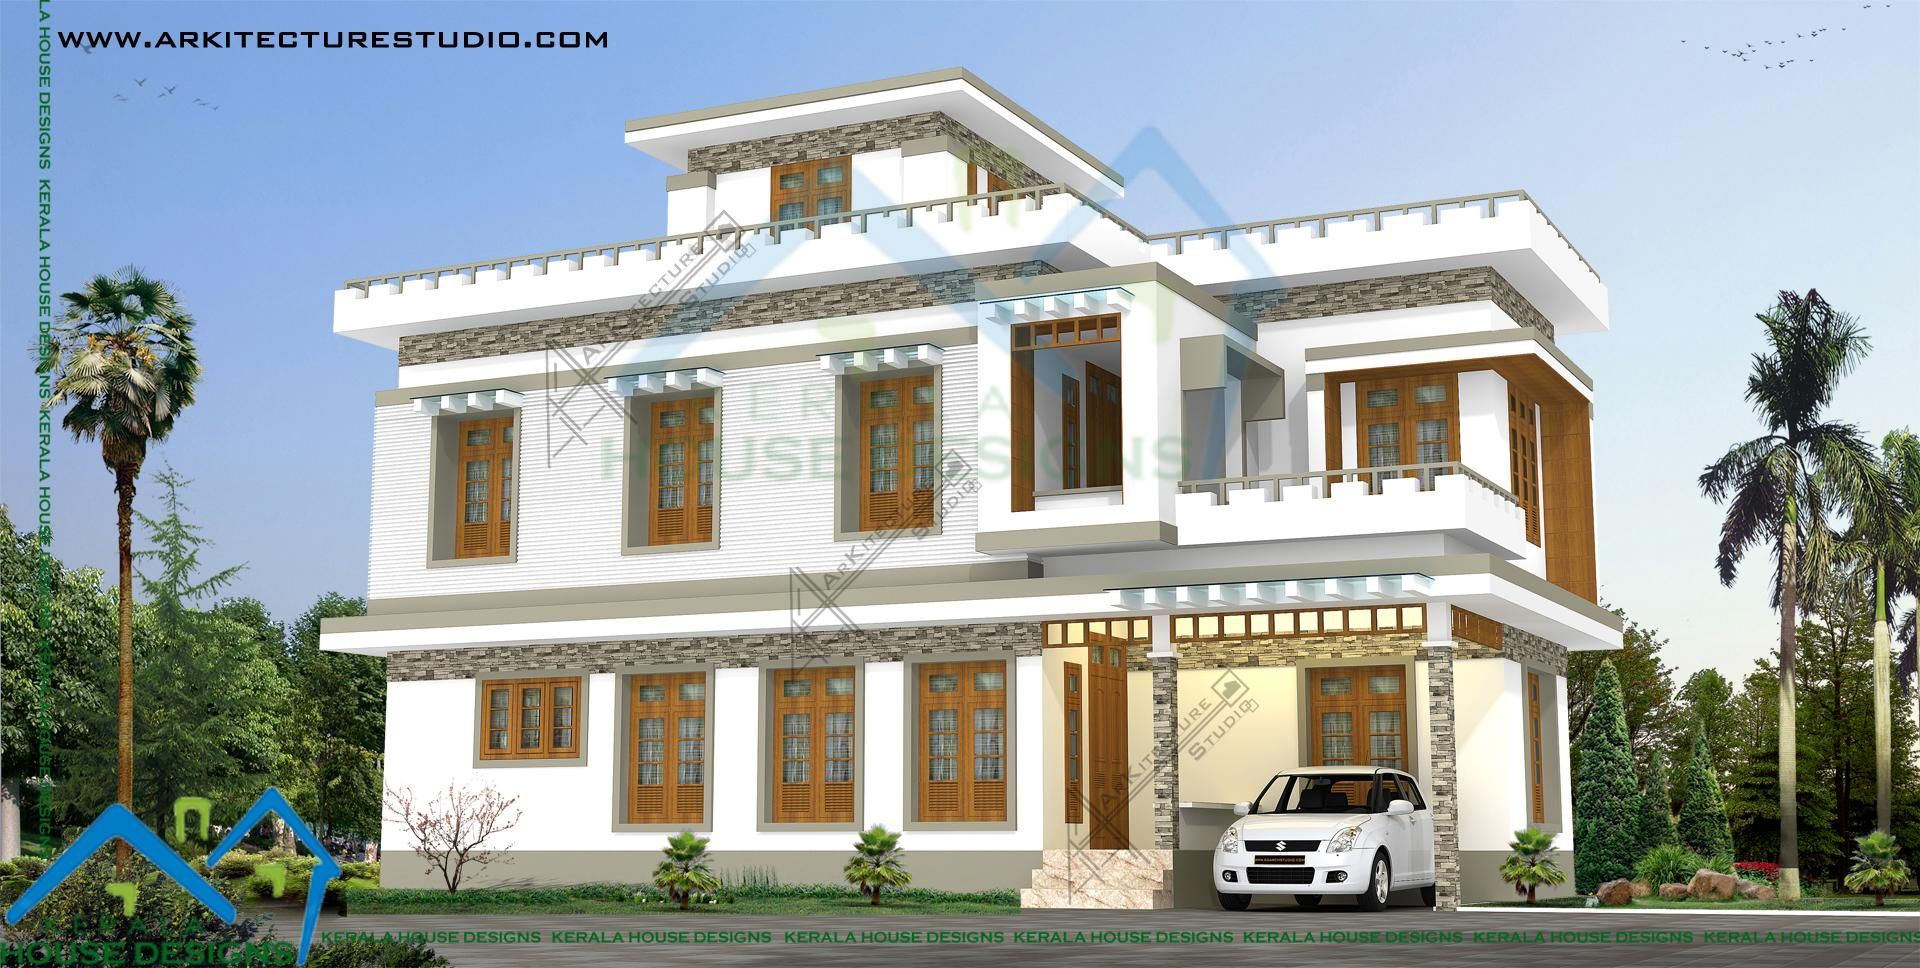 villa 1 KHD | My dream house plans.. | Pinterest | Dream house ...